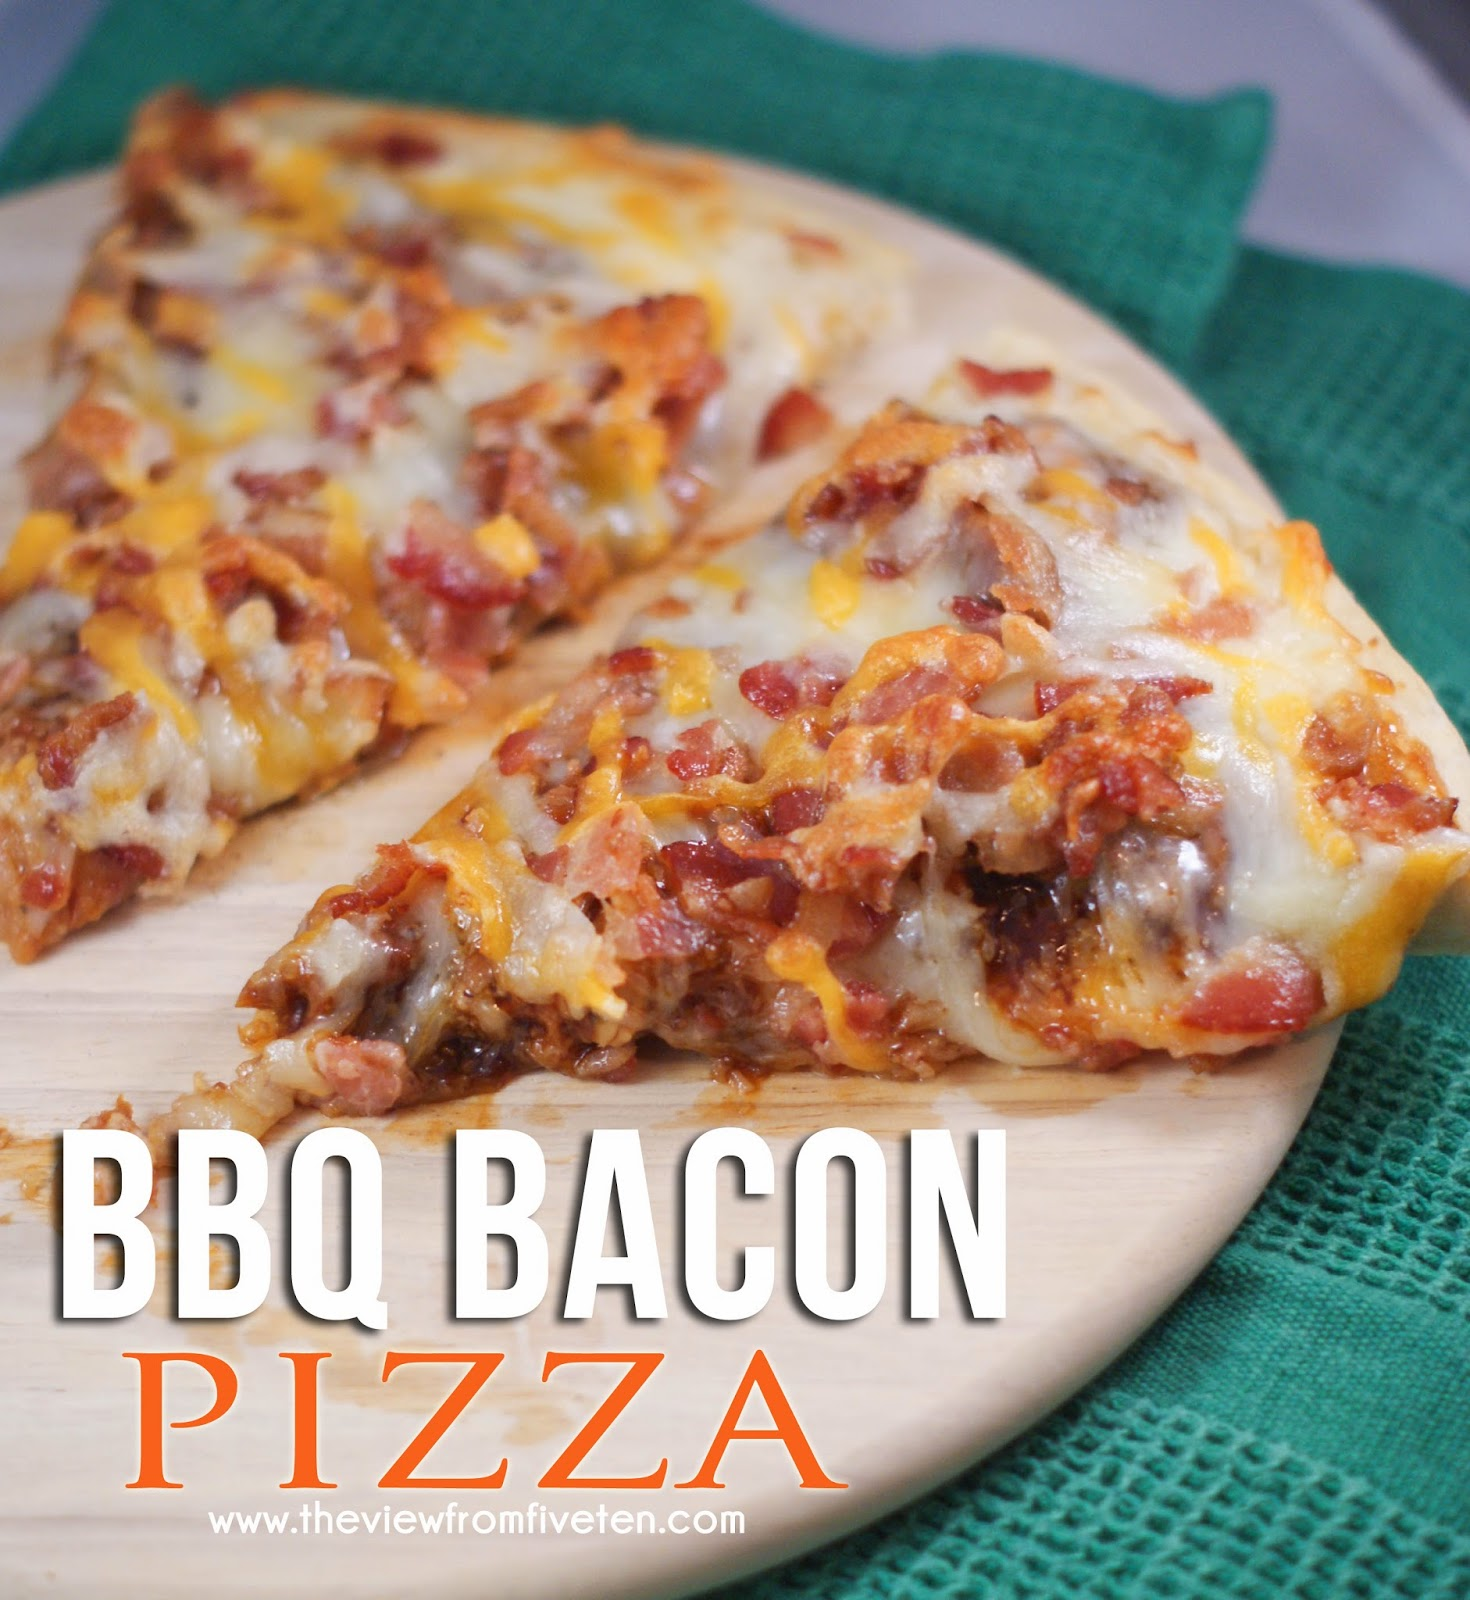 BBQ Bacon Pizza #BaconLove #sponsored